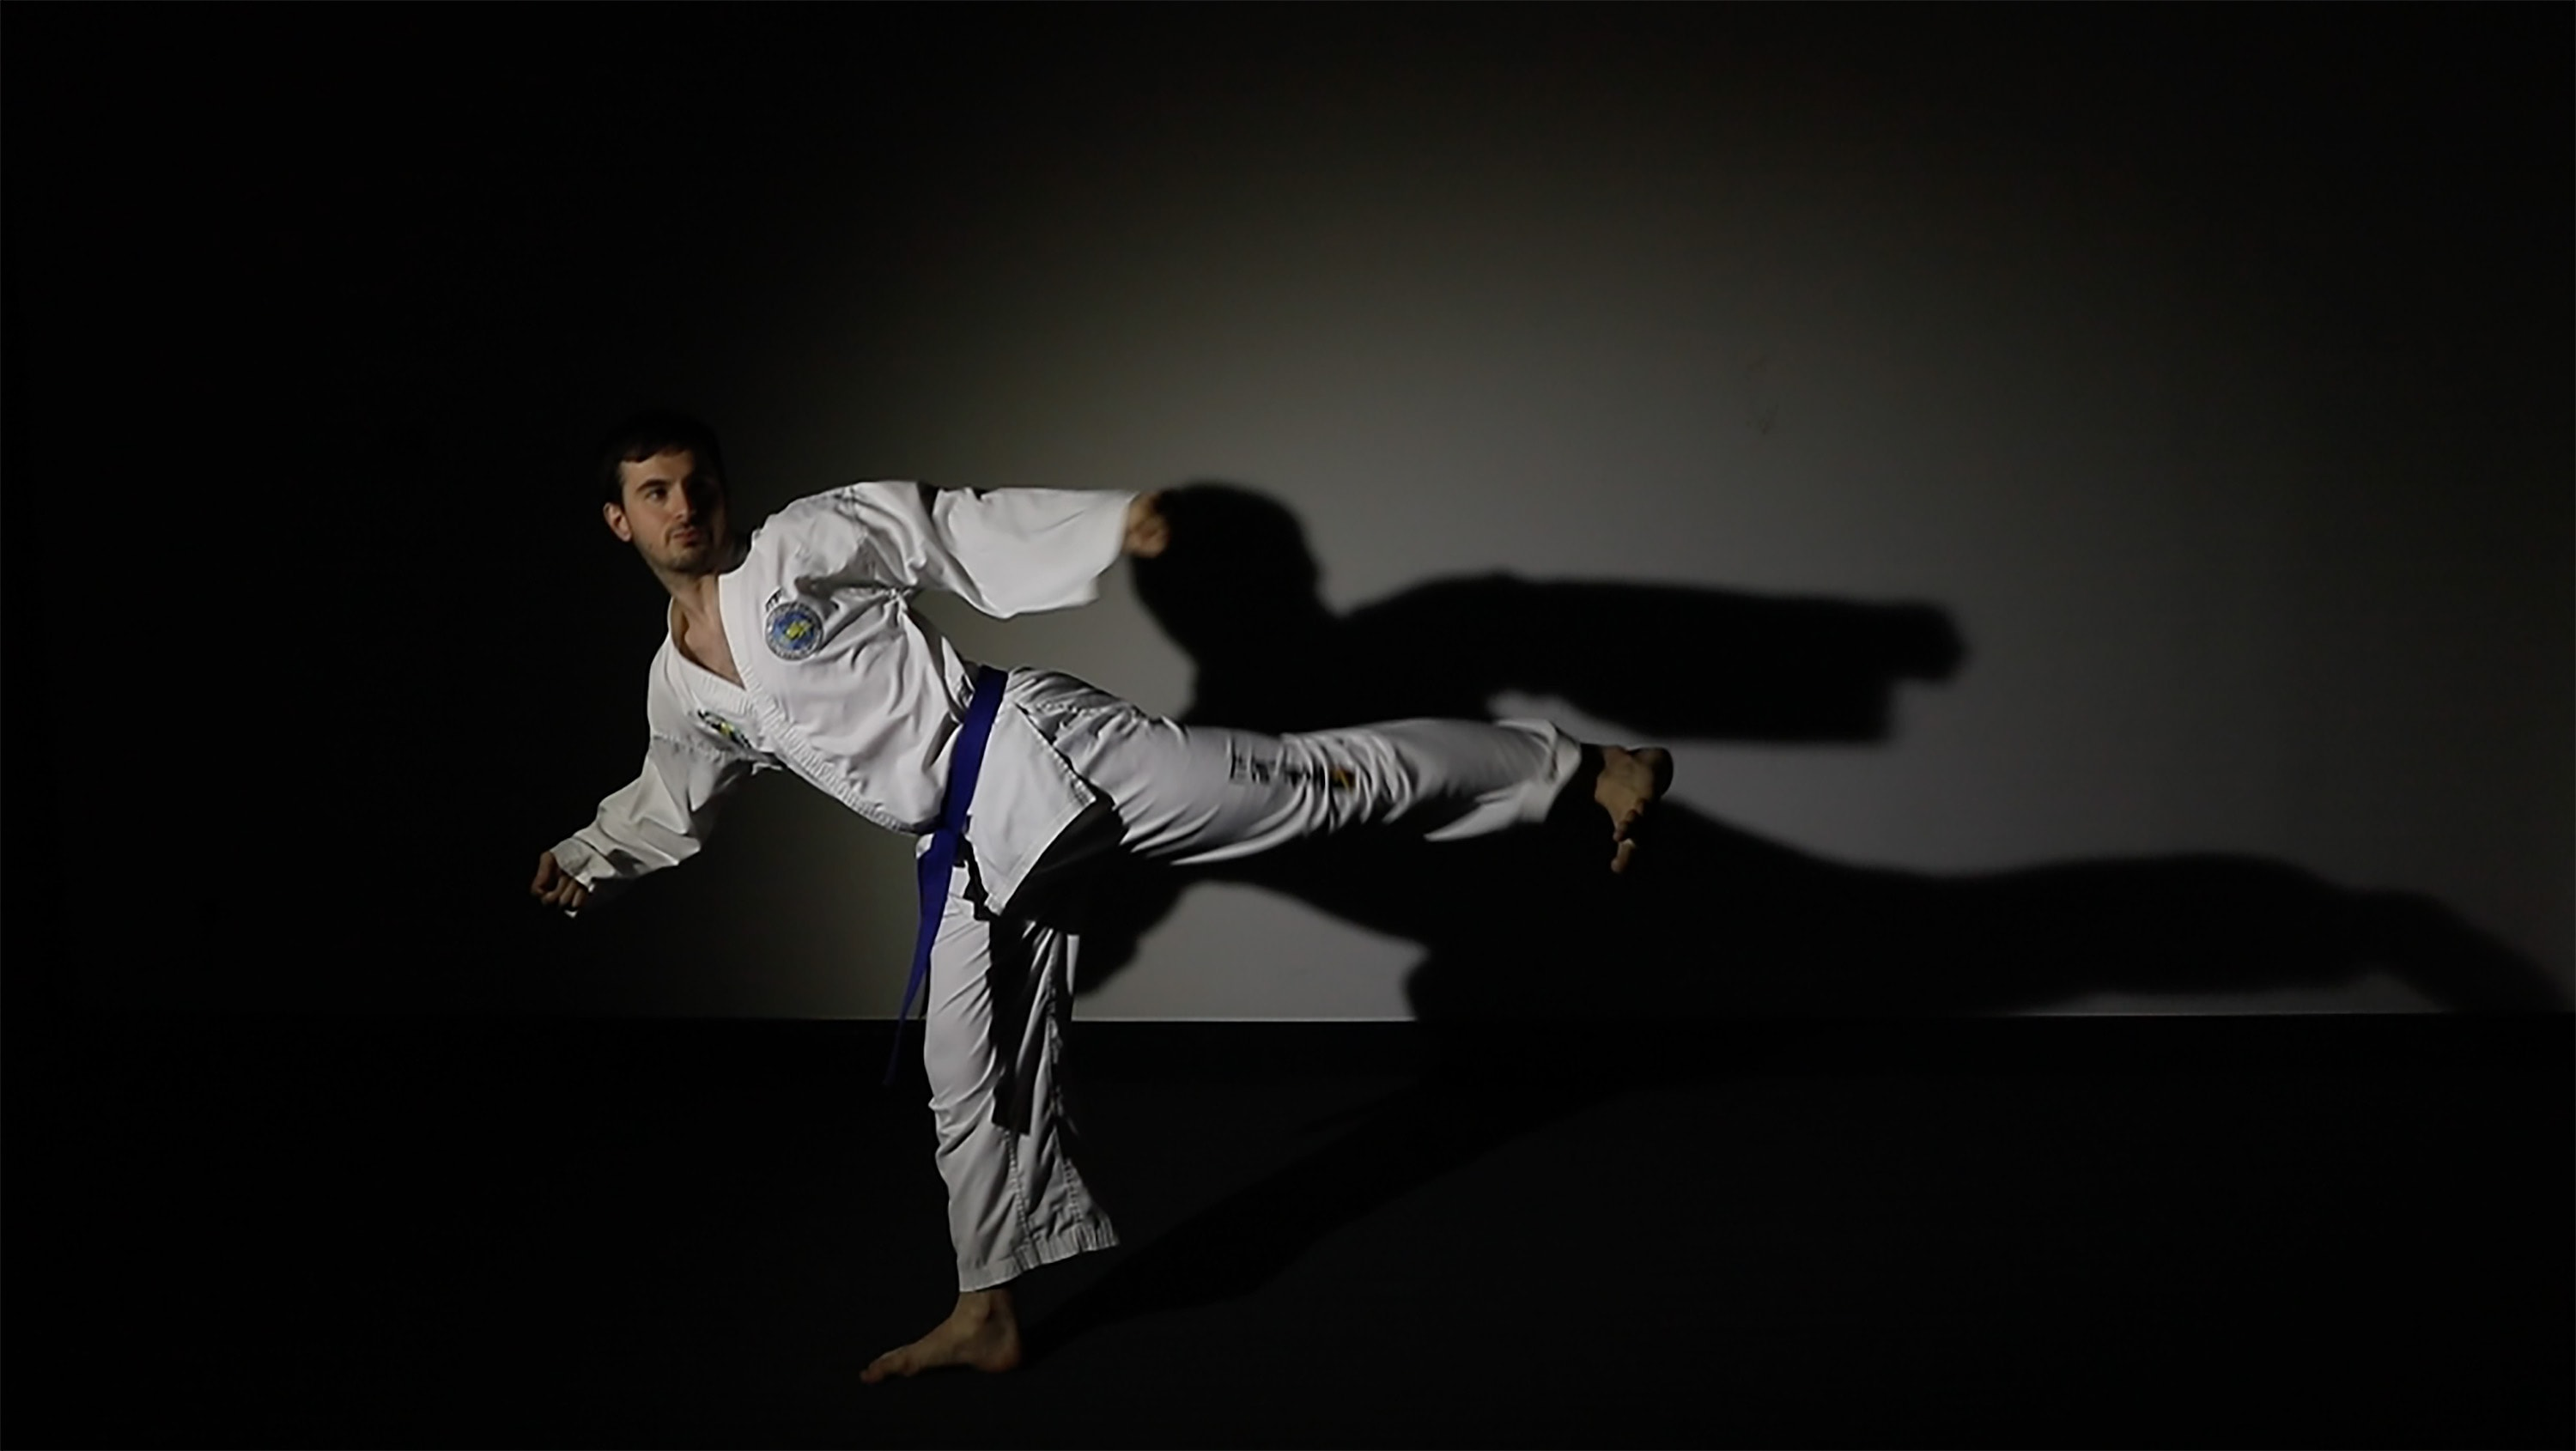 Martial arts motion of a man in a kicking position